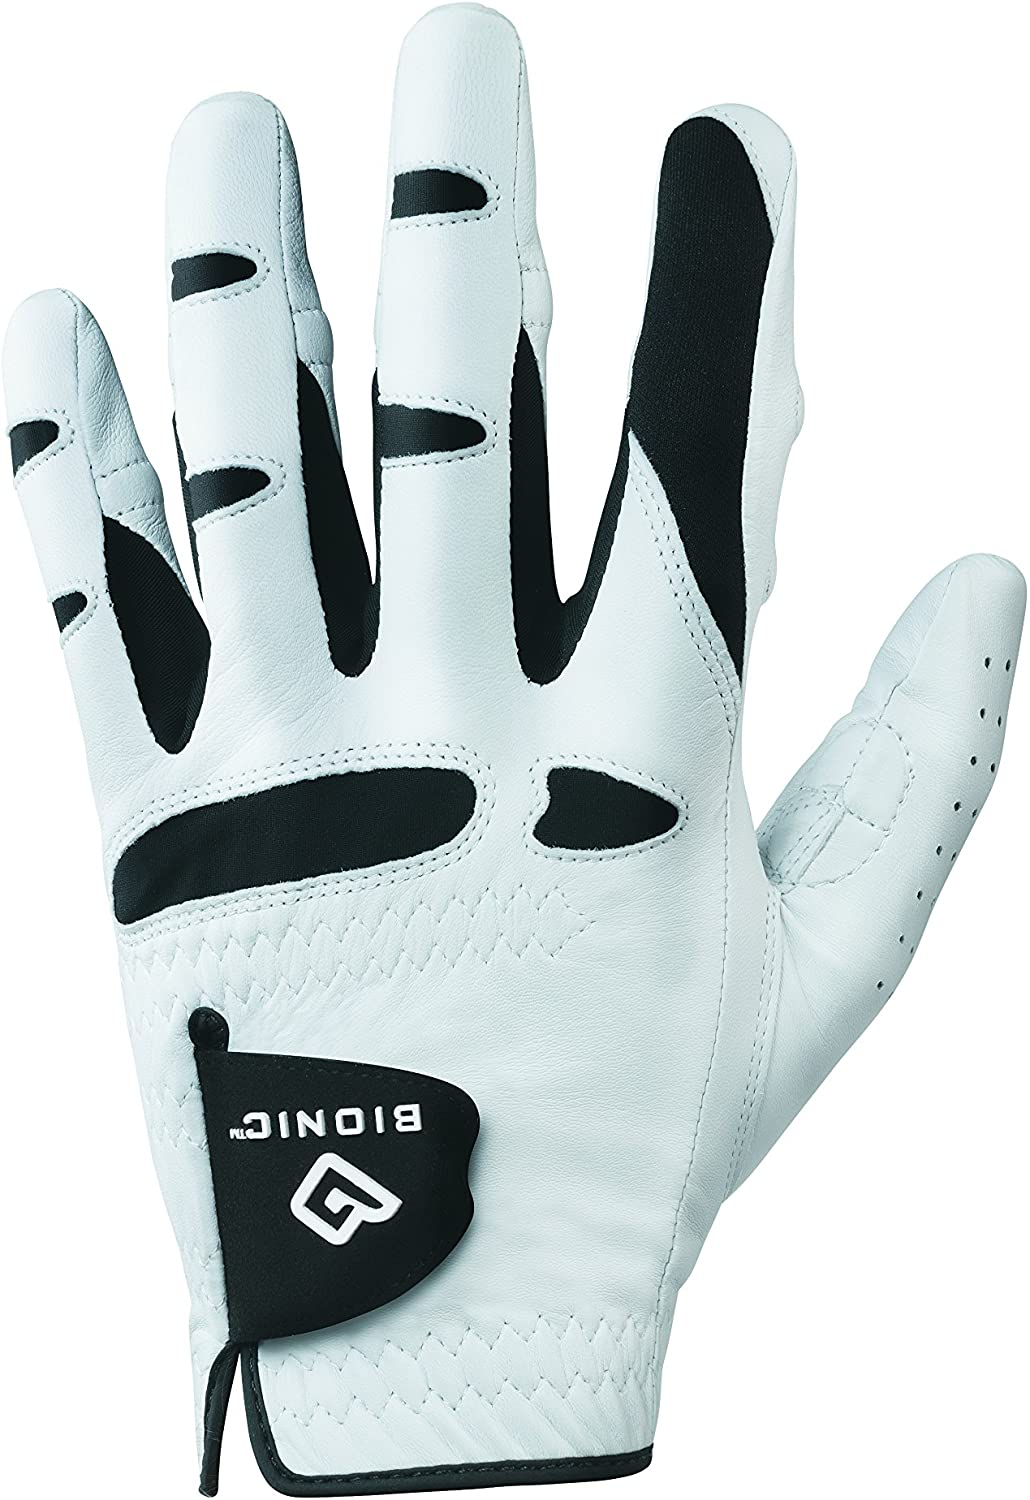 Bionic GGNCMLM Men's StableGrip with Golf Lef Deluxe Fit Glove Natural low-pricing